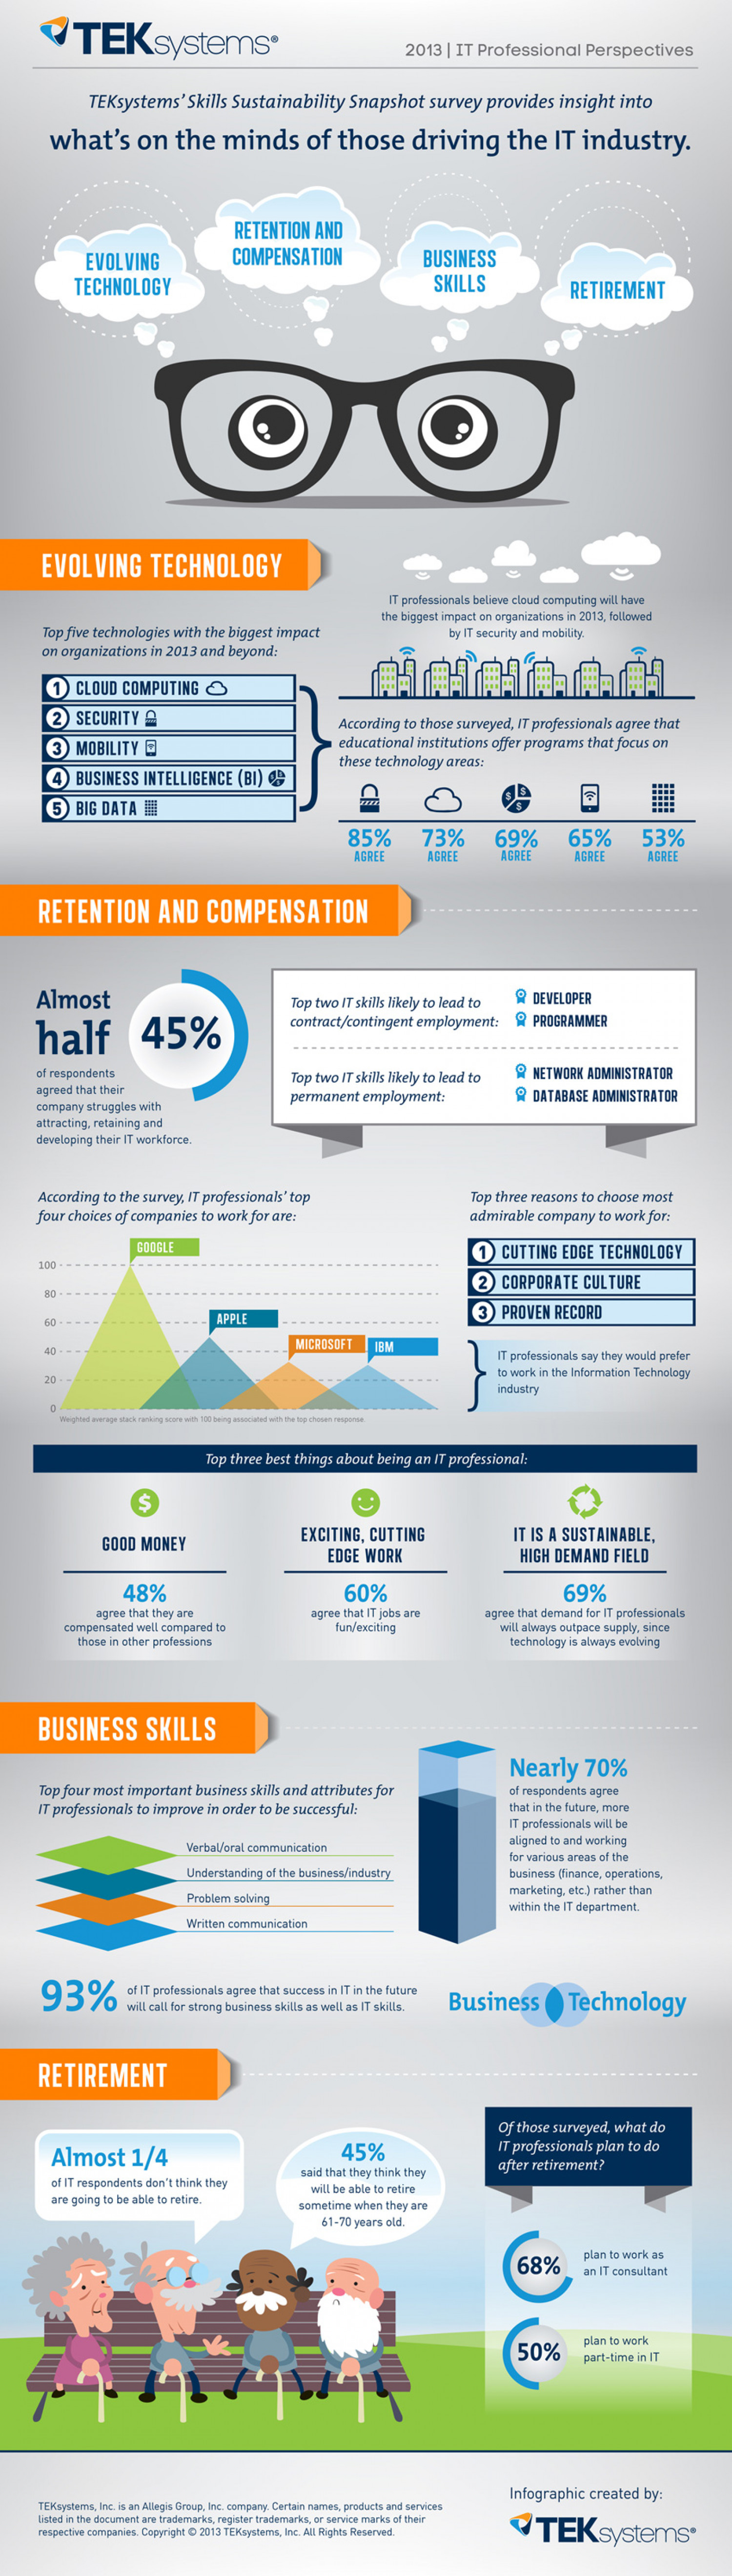 IT Skills Sustainability Snapshot 2013 Infographic